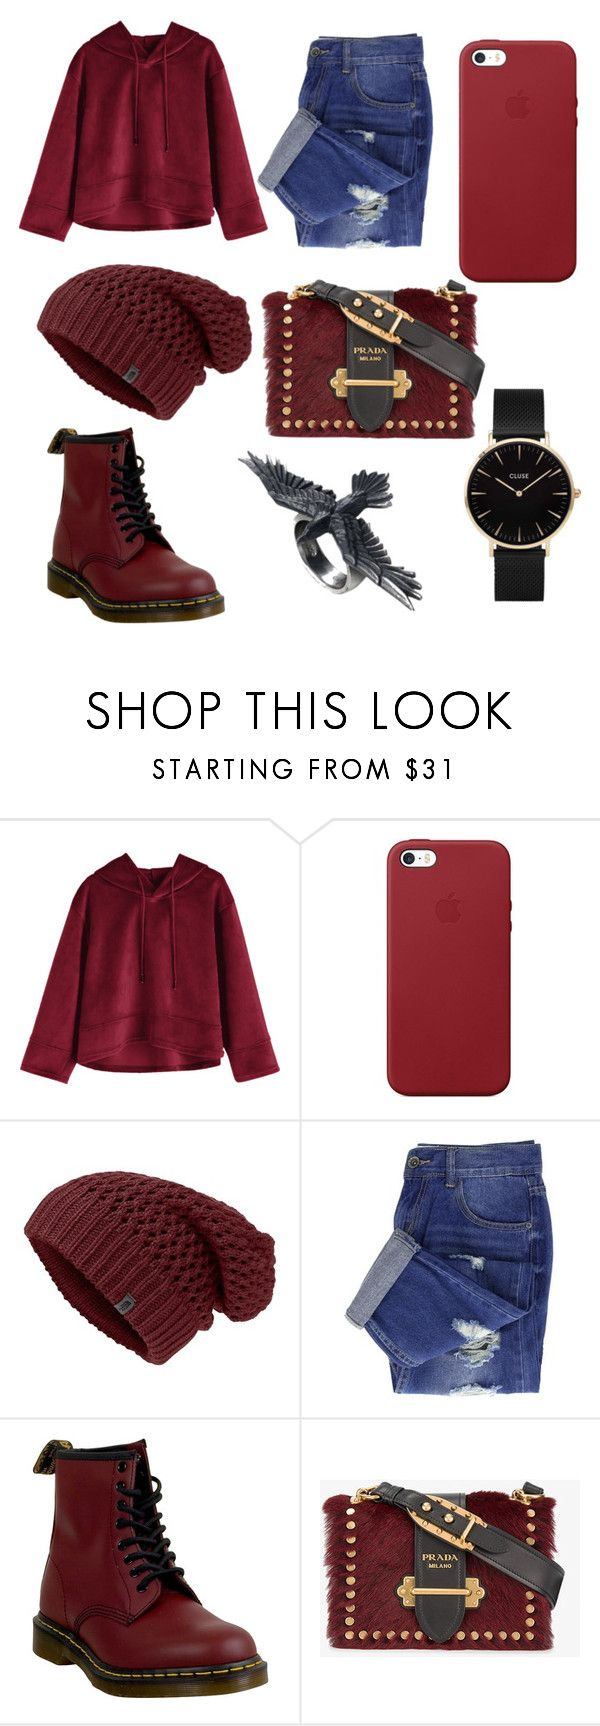 """#burgundy"" by emilia13258 ❤ liked on Polyvore featuring Apple, Dr. Martens, Prada and CLUSE"